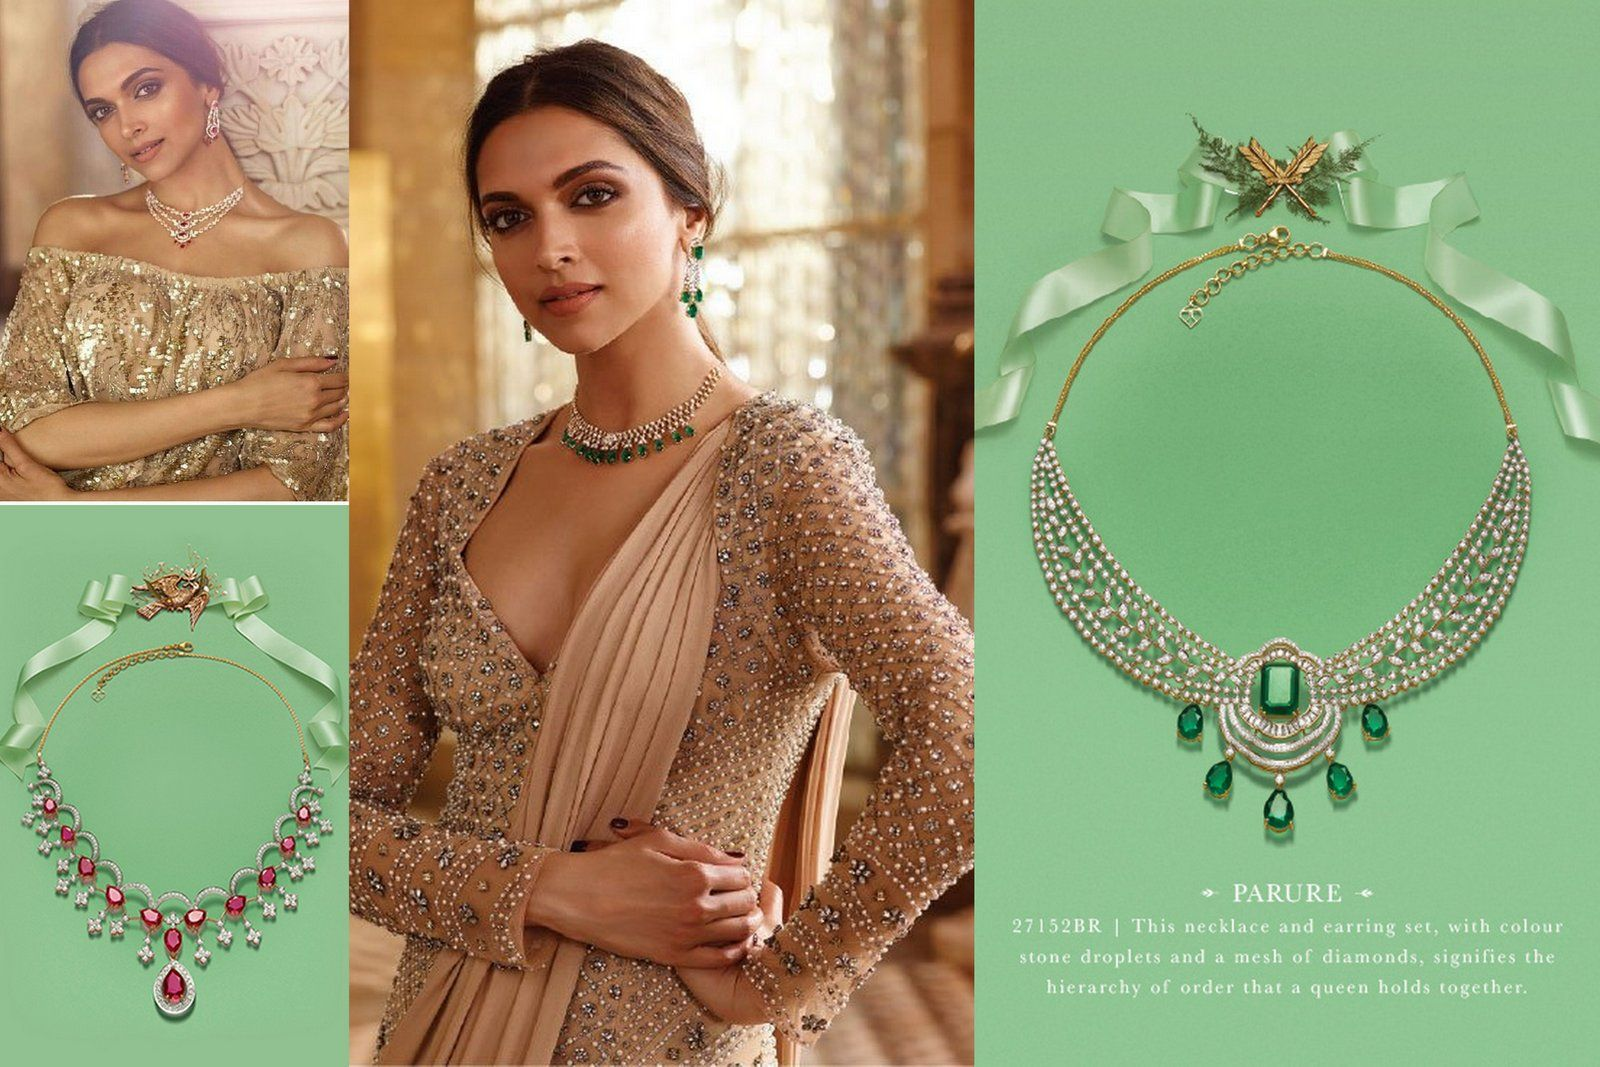 Queen Of Hearts Hairstyles: Discovering 4 Beautiful Indian Jewelry Brands